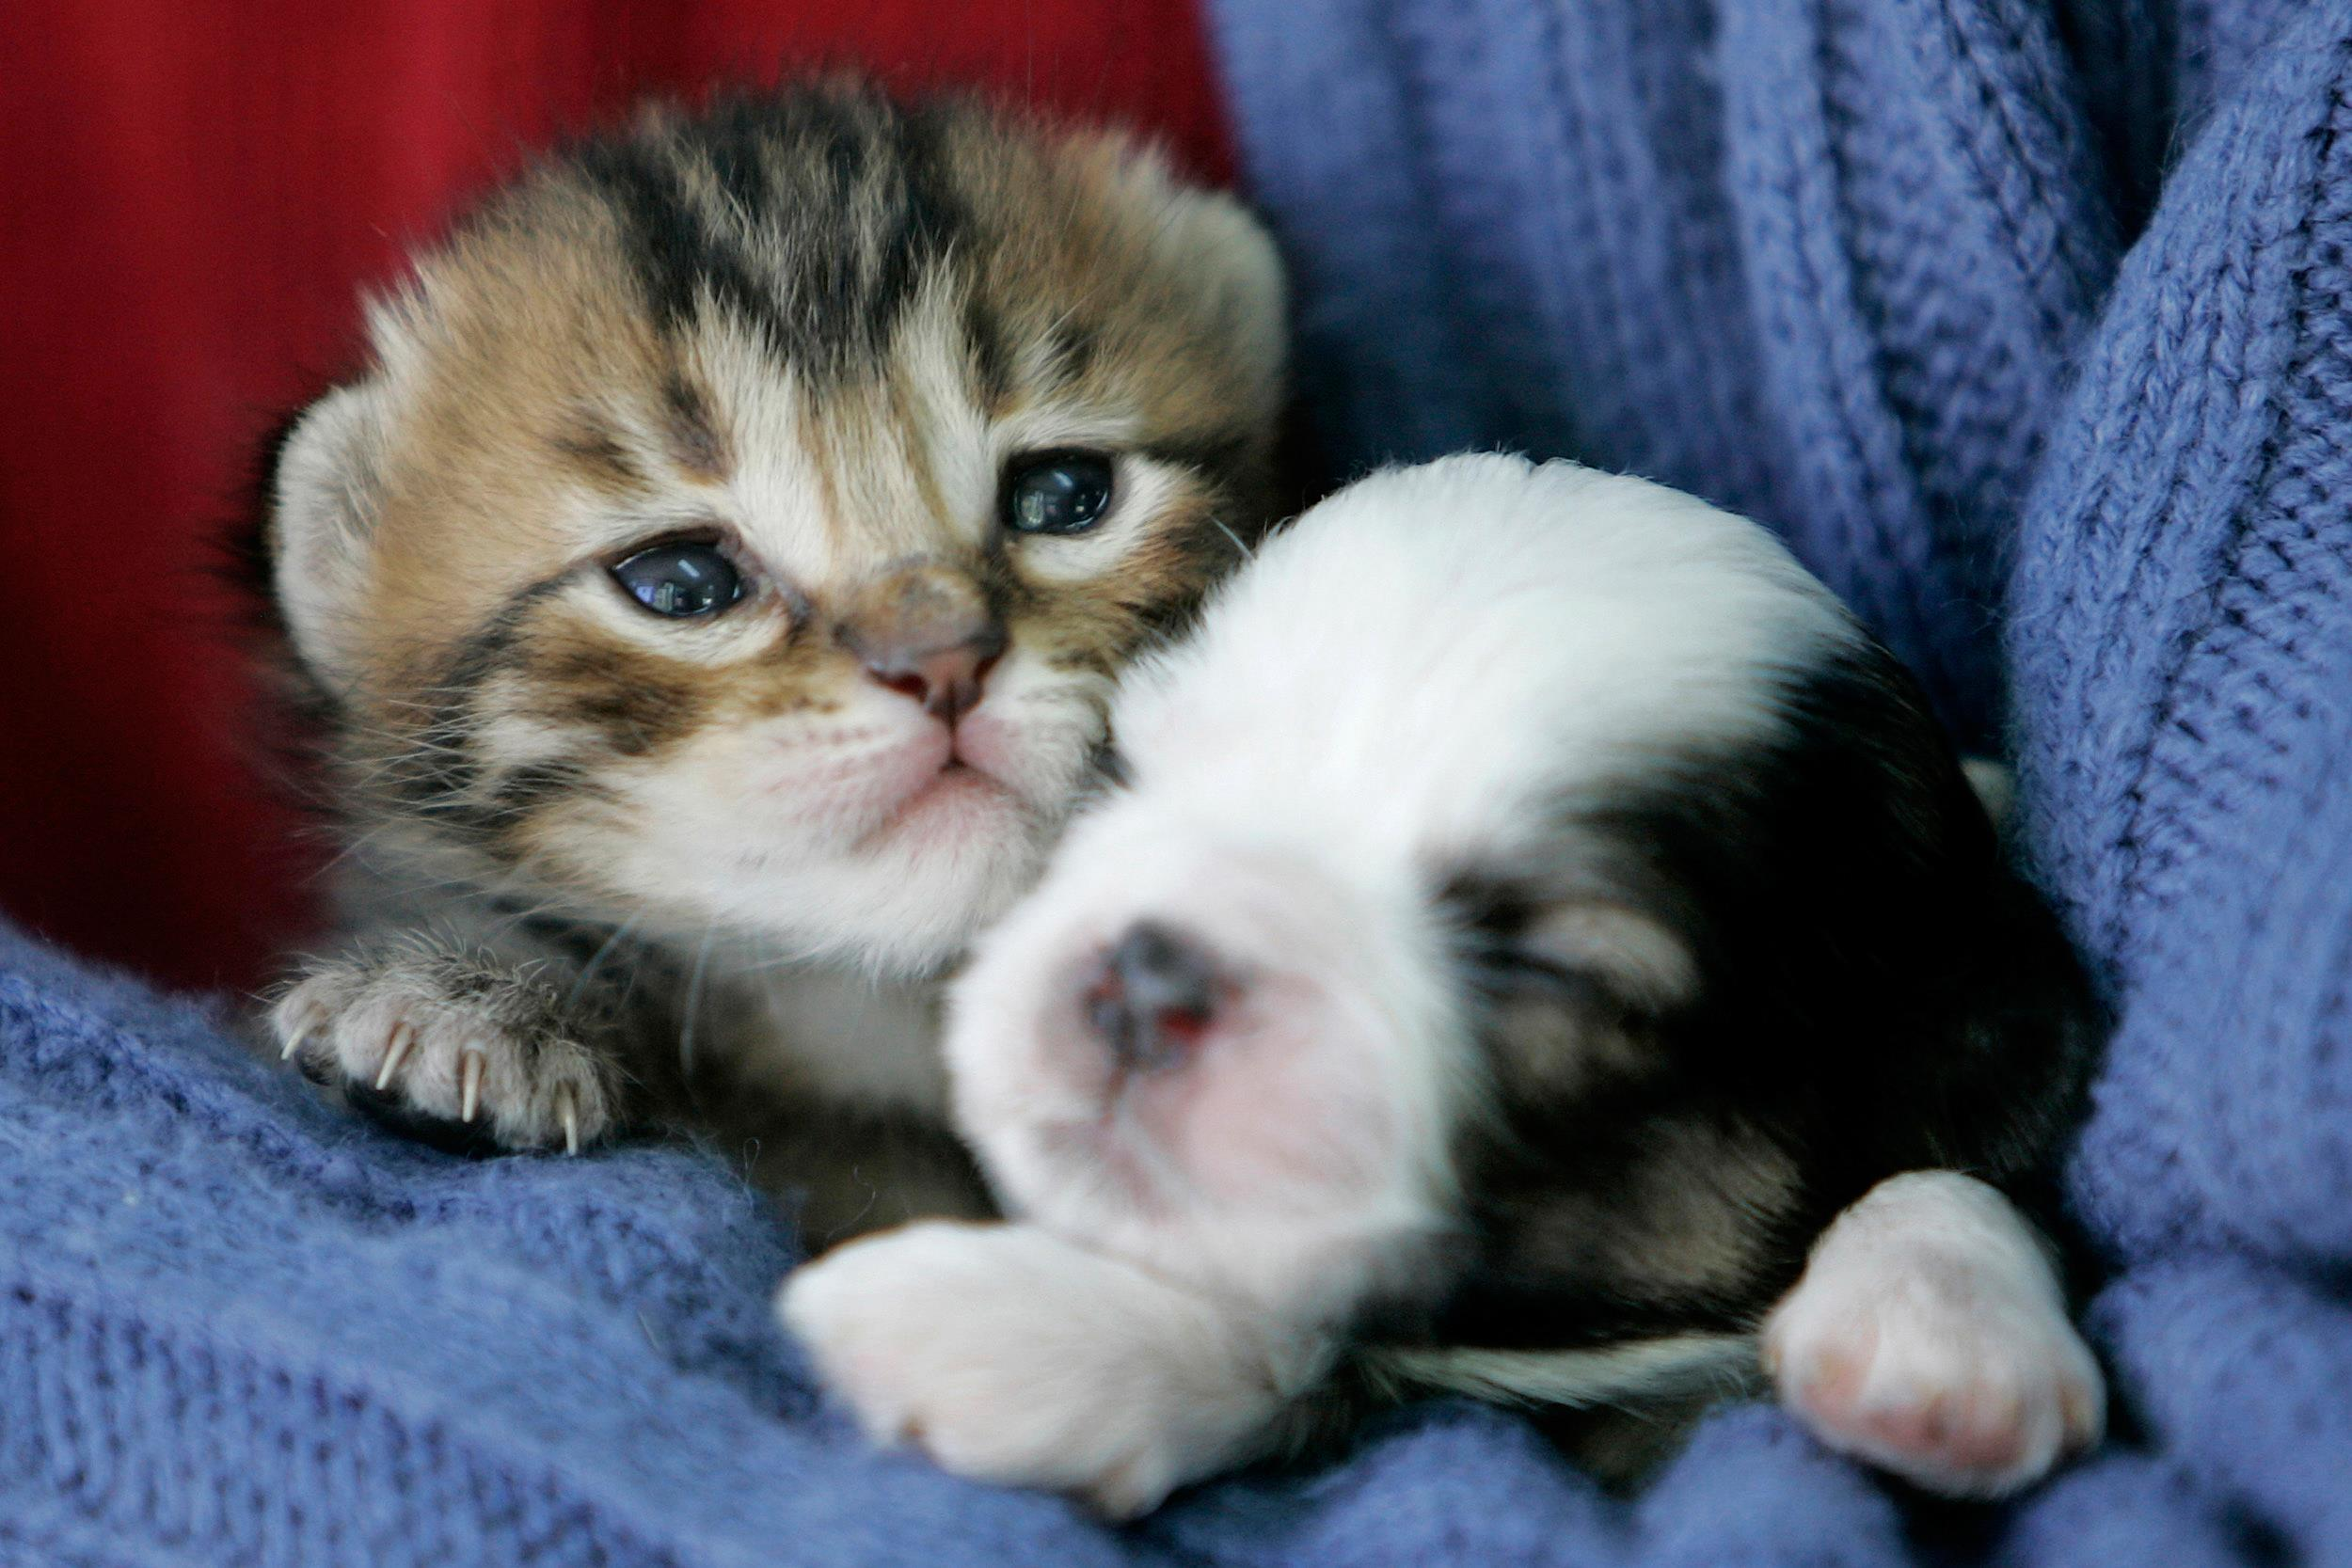 Image: A kitten and puppy snuggle up together